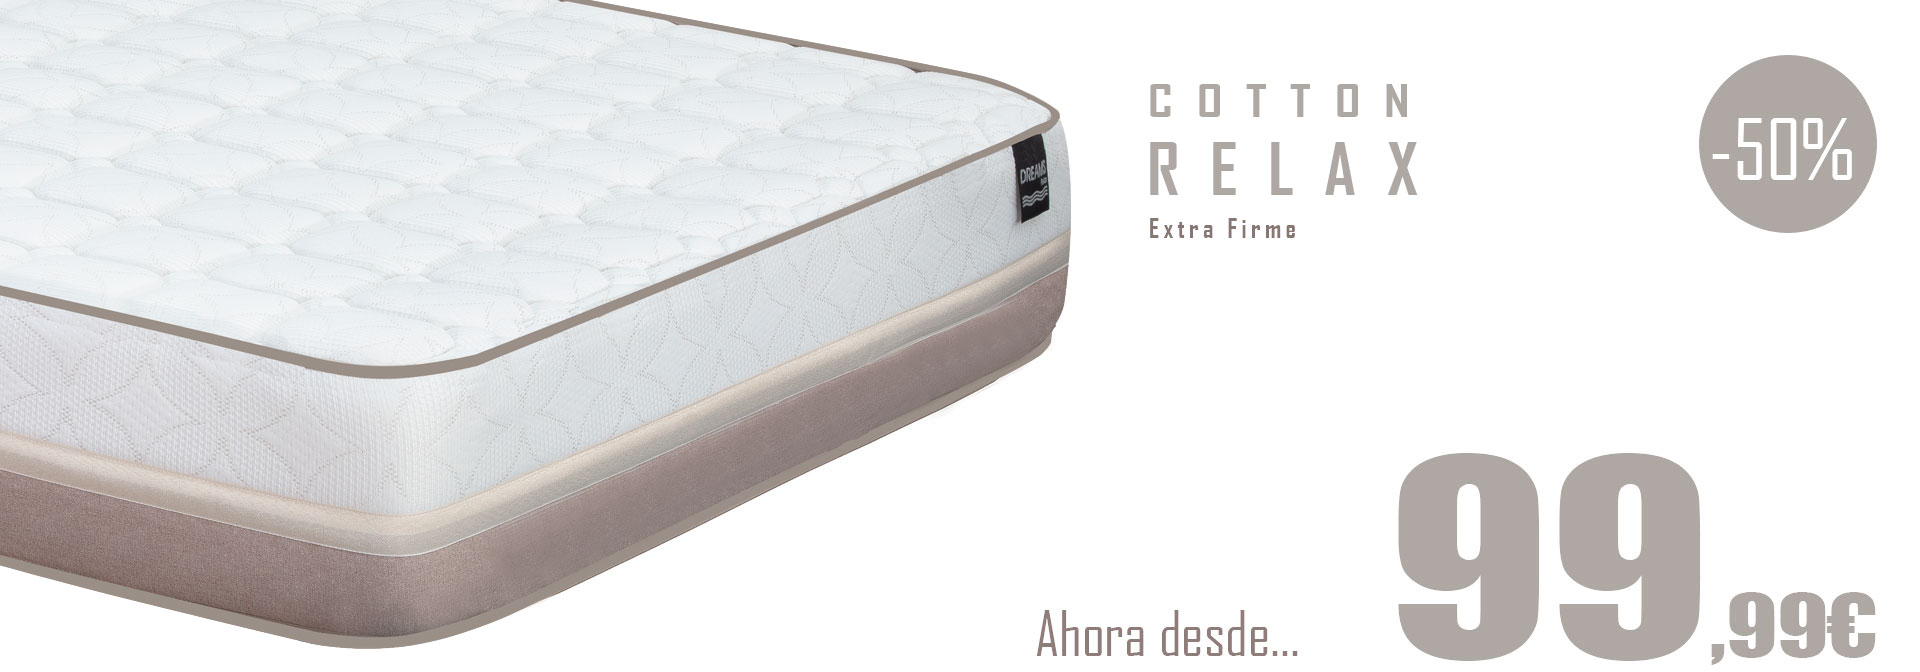 Cotton relax1